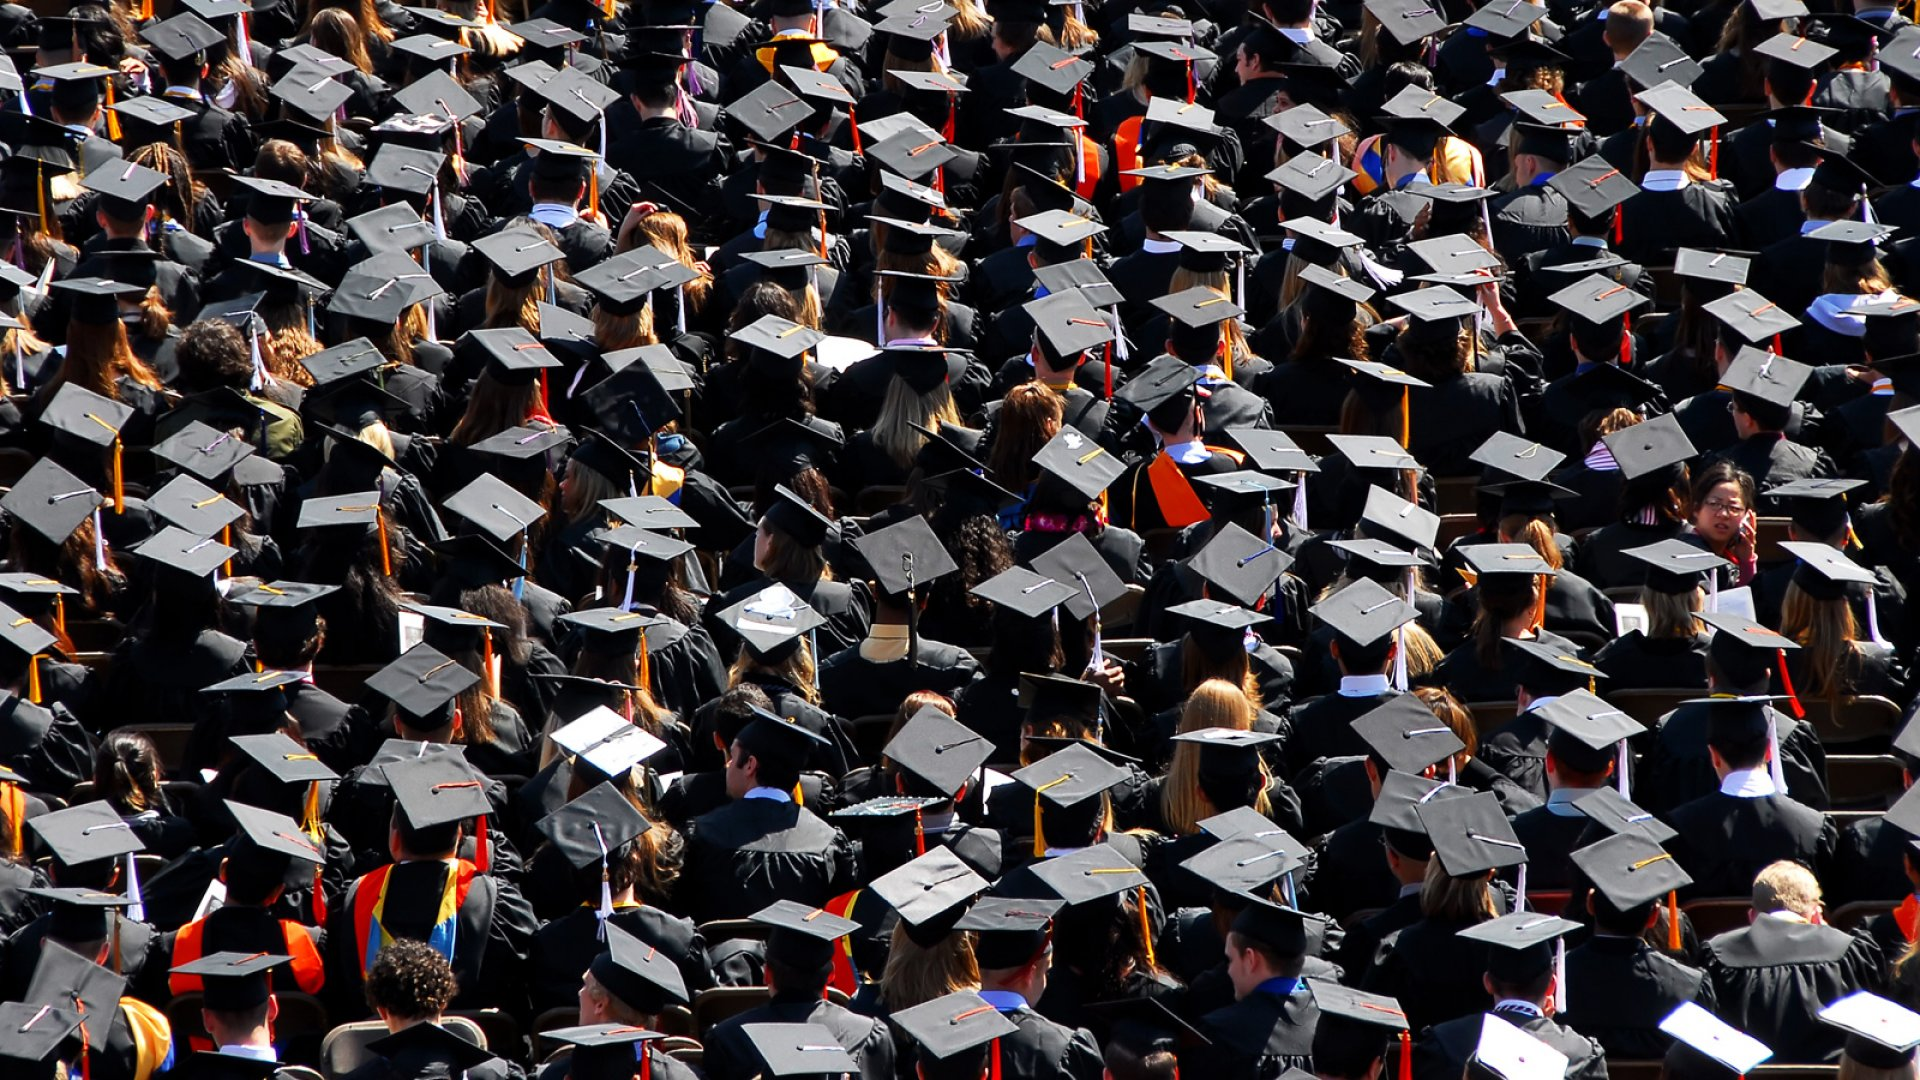 This School's Alums Land the Most VC Funding